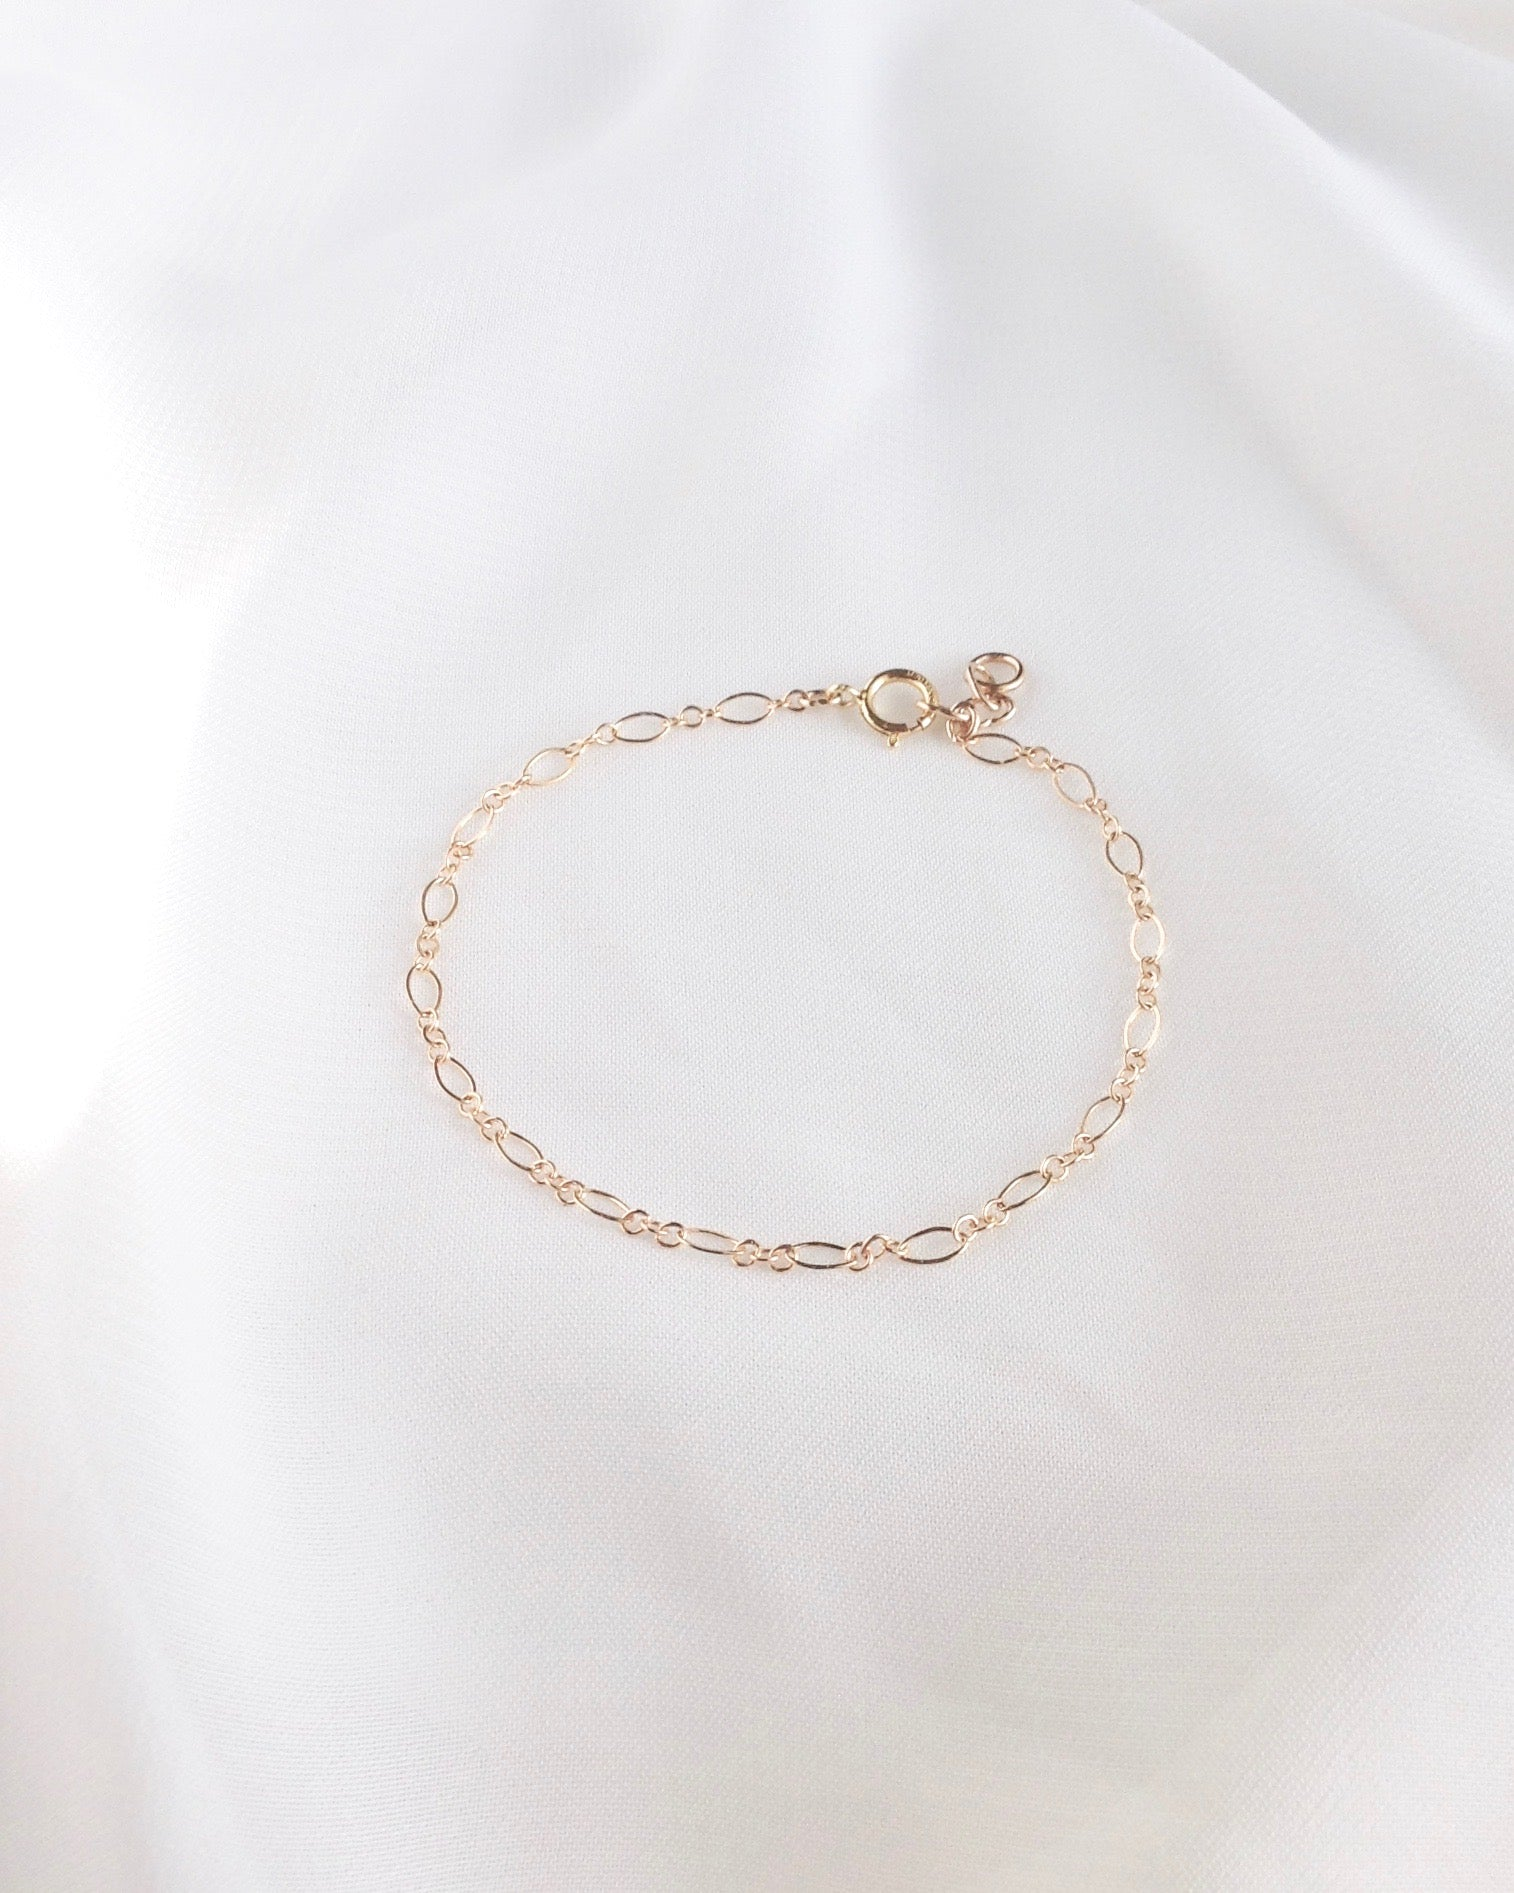 Delicate Minimalist Bracelet in Gold Filled or Sterling Silver | IB Jewelry